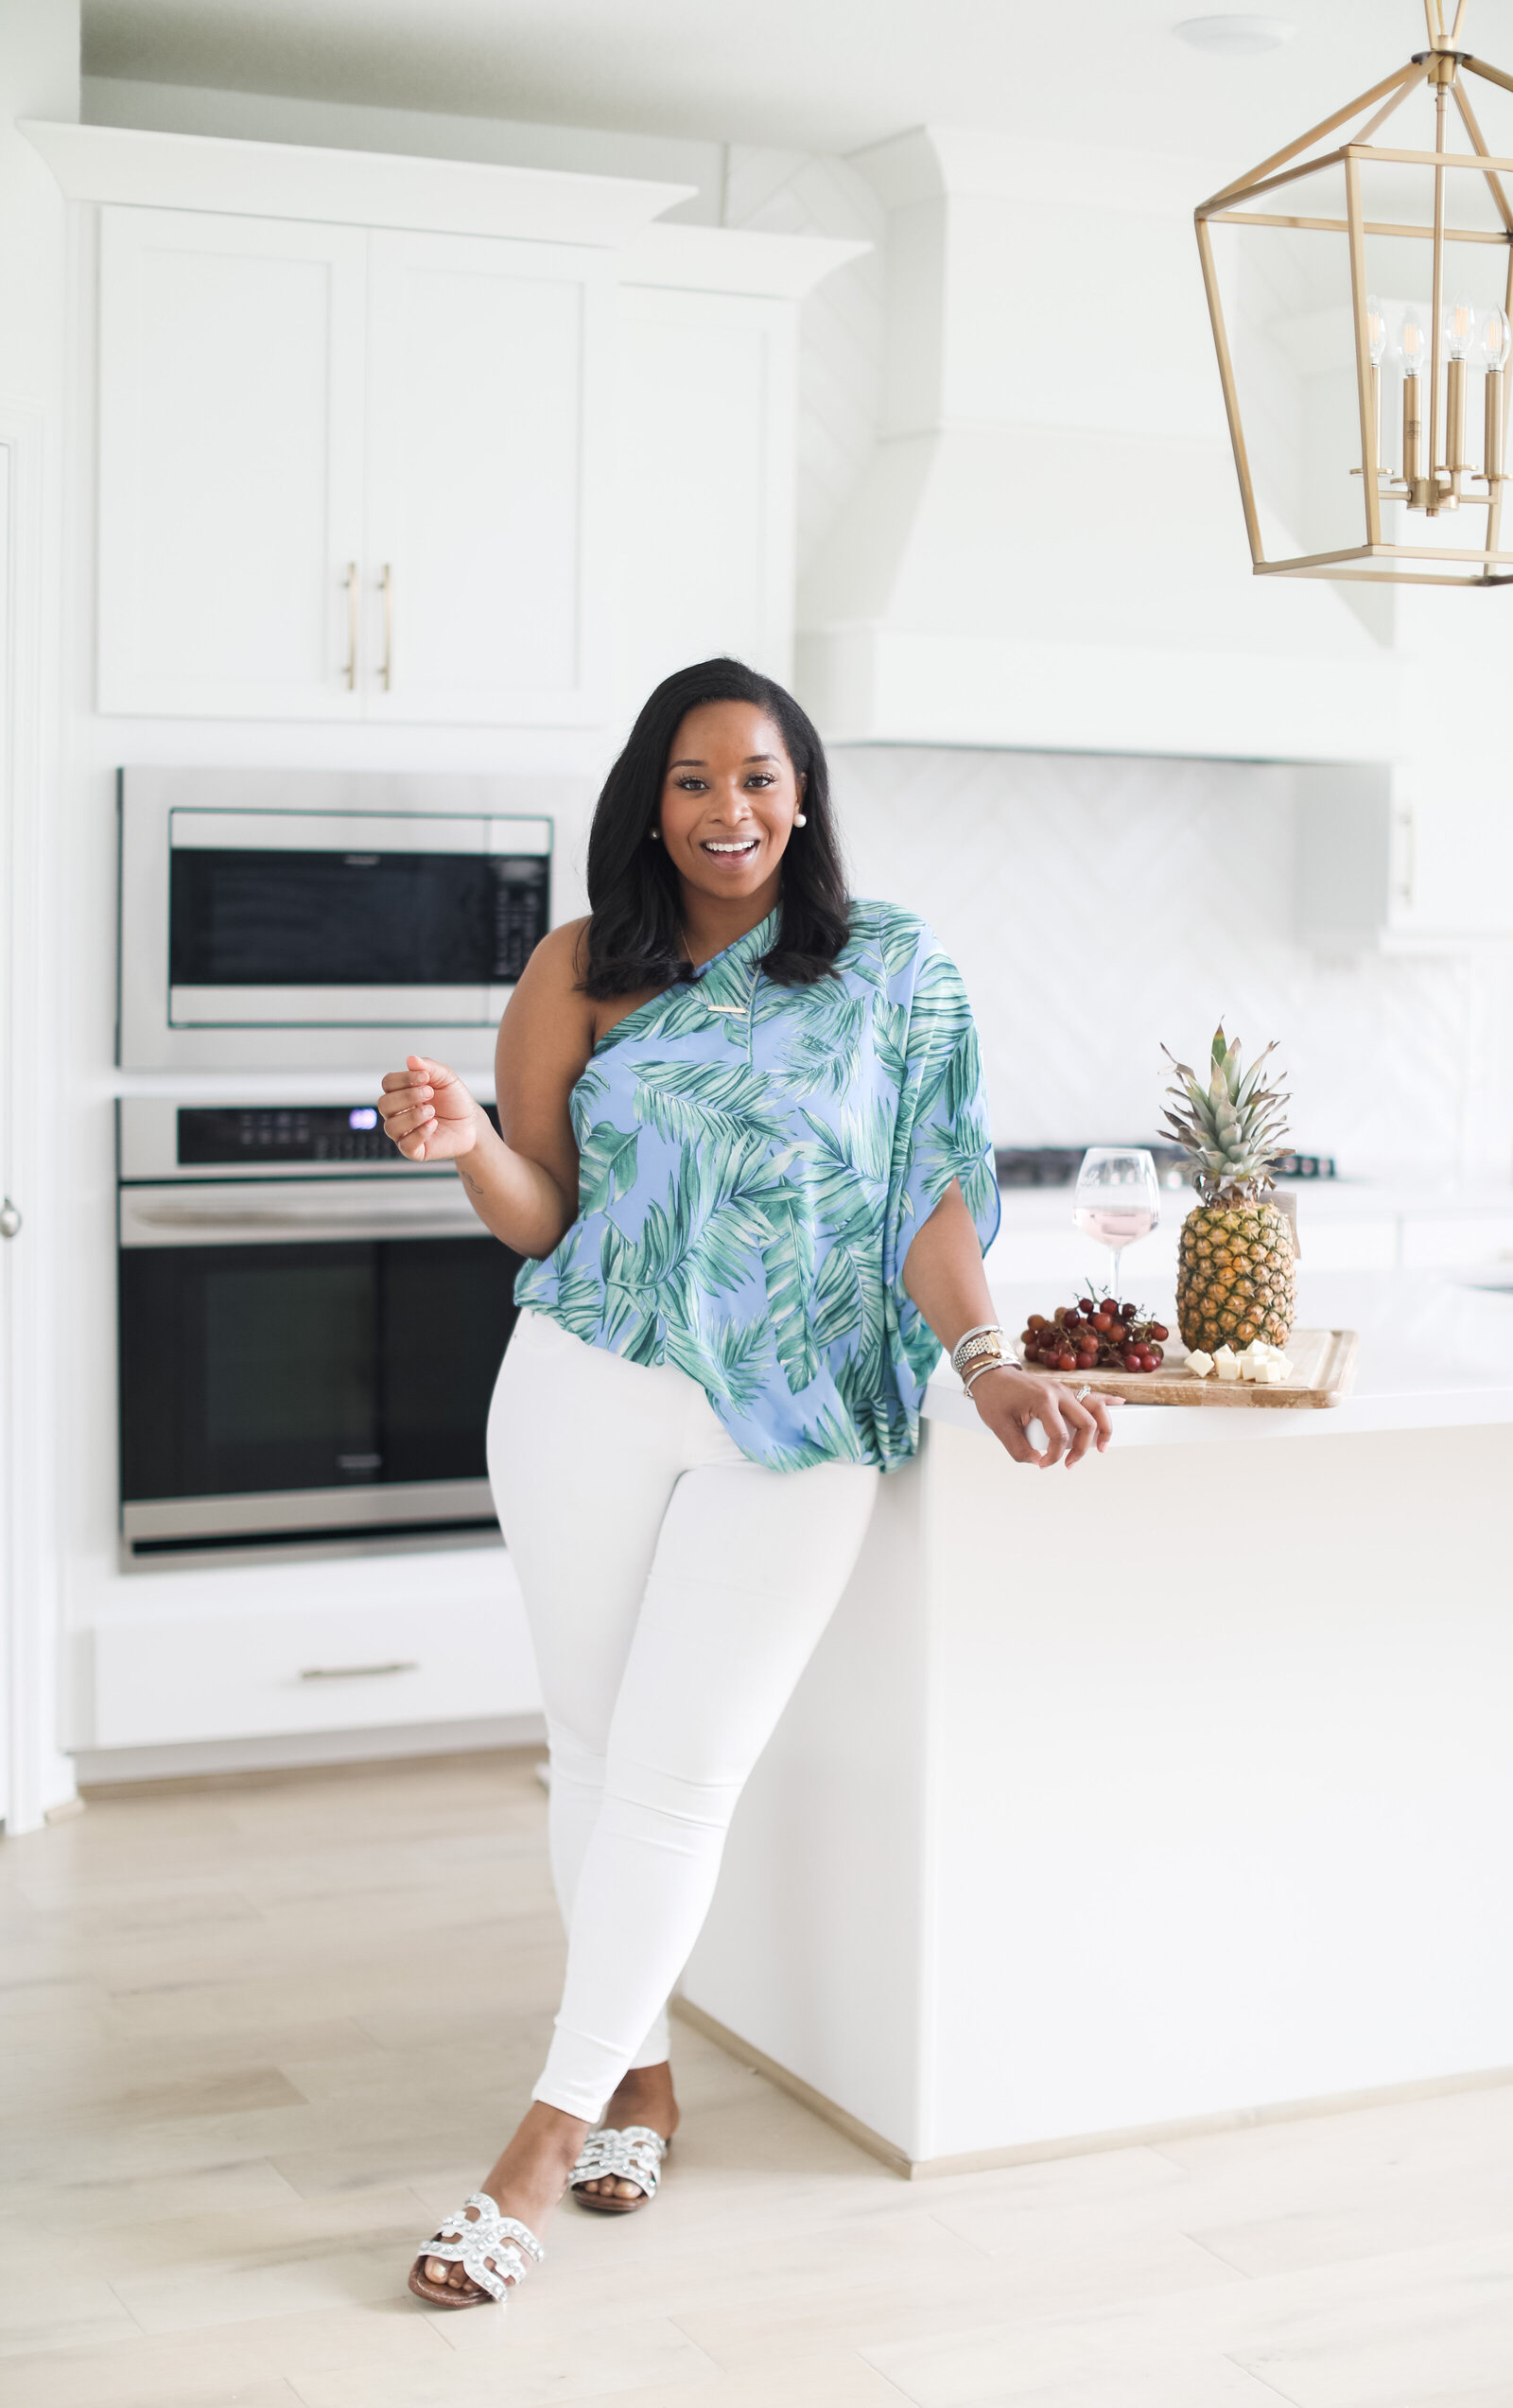 Carmen Renee - Houston Texas Lifestyle Beauty Style Decor Motherhood Blogger - 44